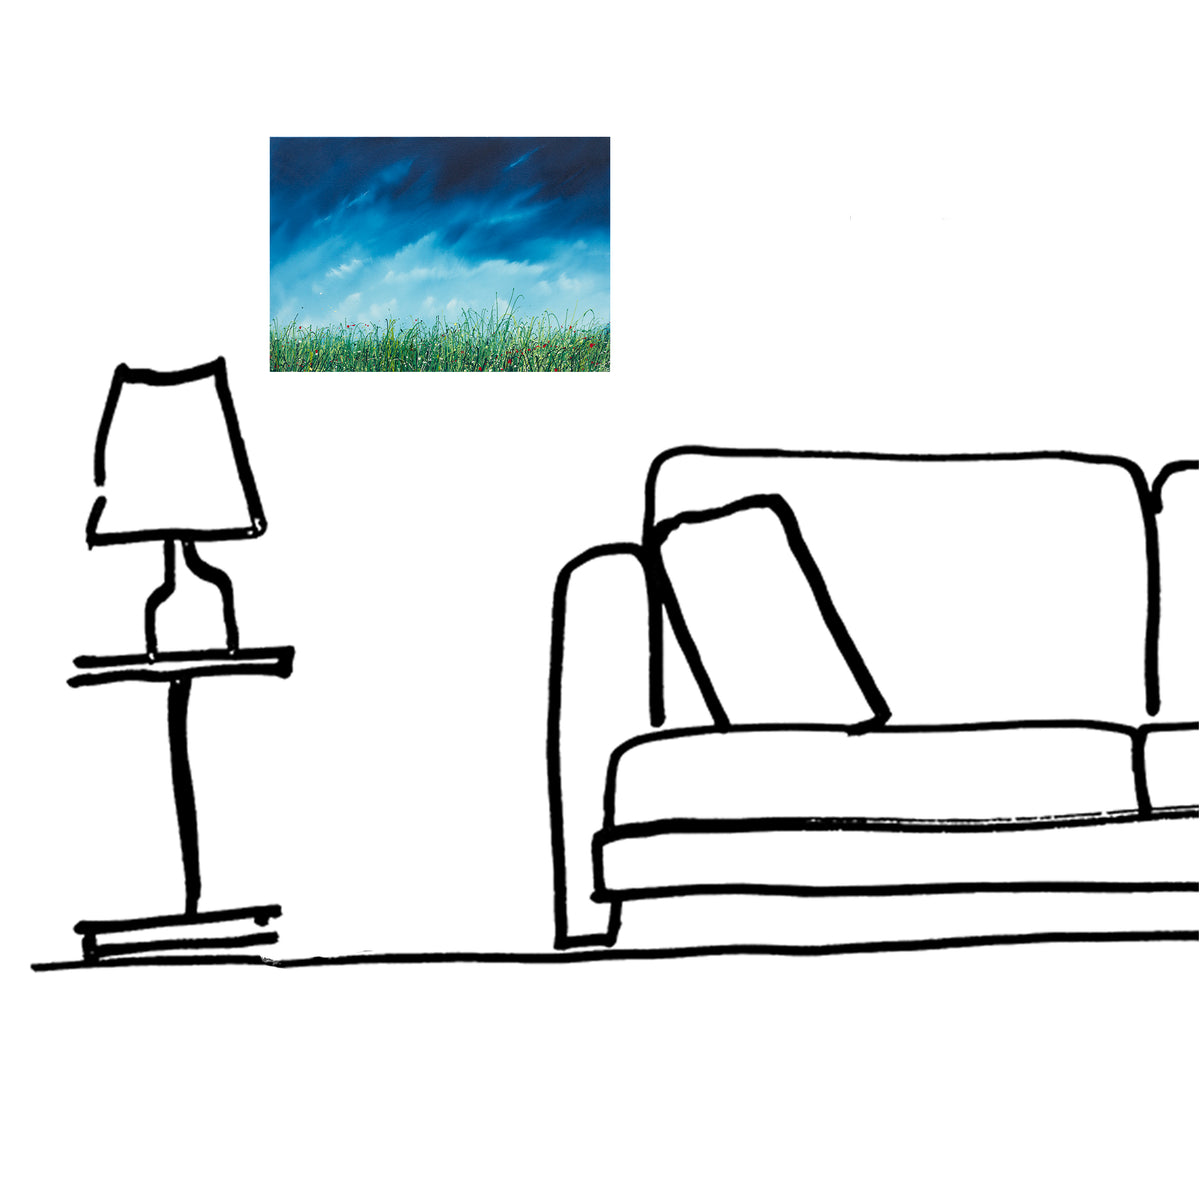 The breath, lounge room setting view of the oil painting of wild grasses by British contemporary artist  Royden Astrop.